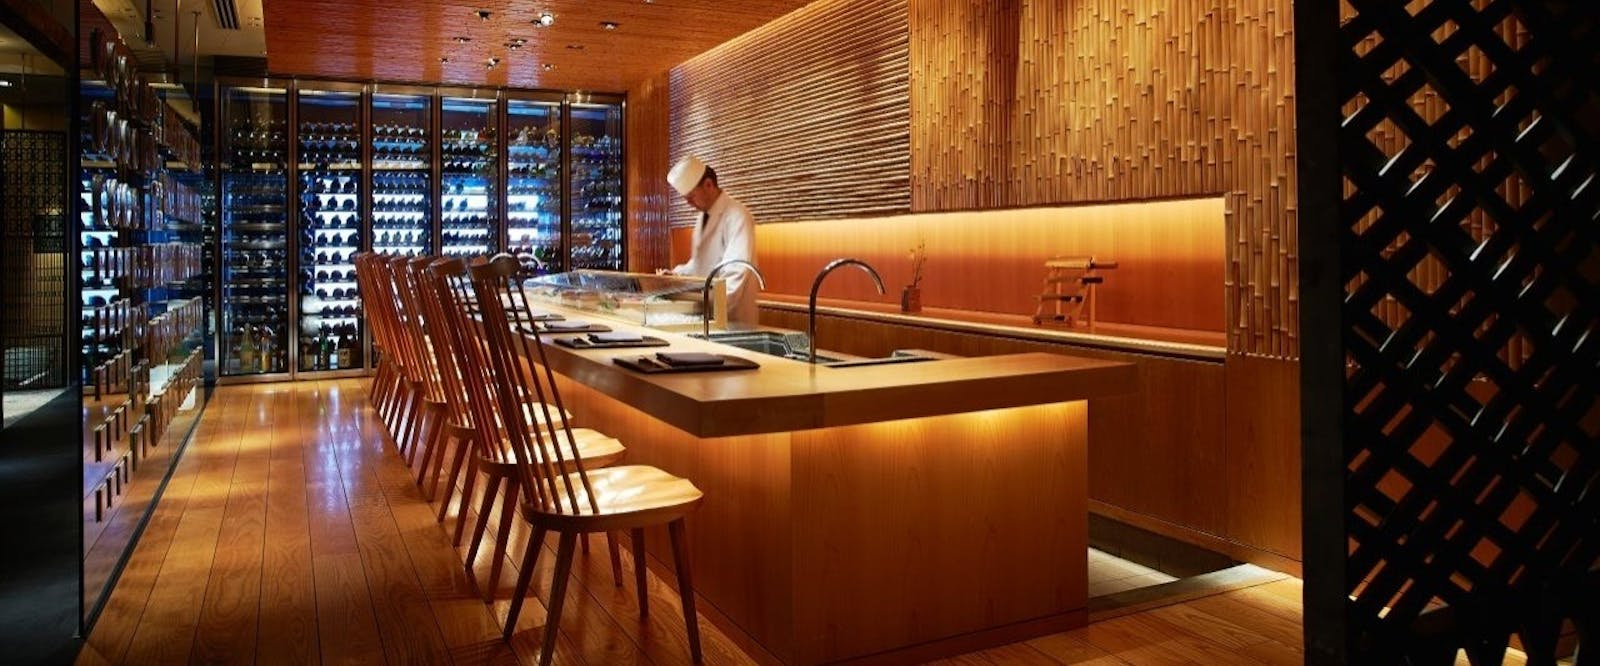 Touzan Sushi Counter at Hyatt Regency Kyoto, Japan